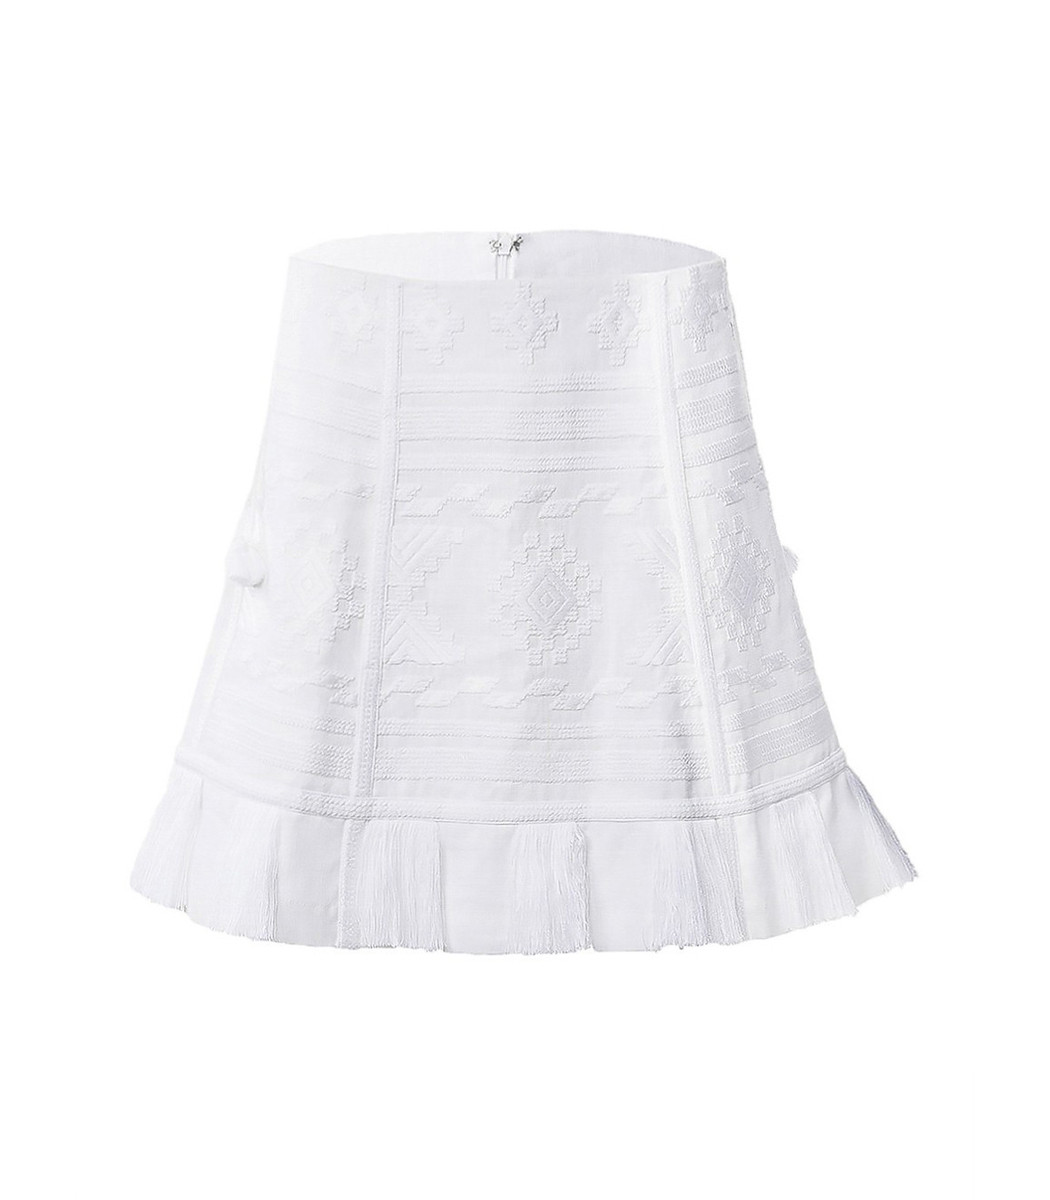 White Denim Floral Embroidered Button Front Skirt - River